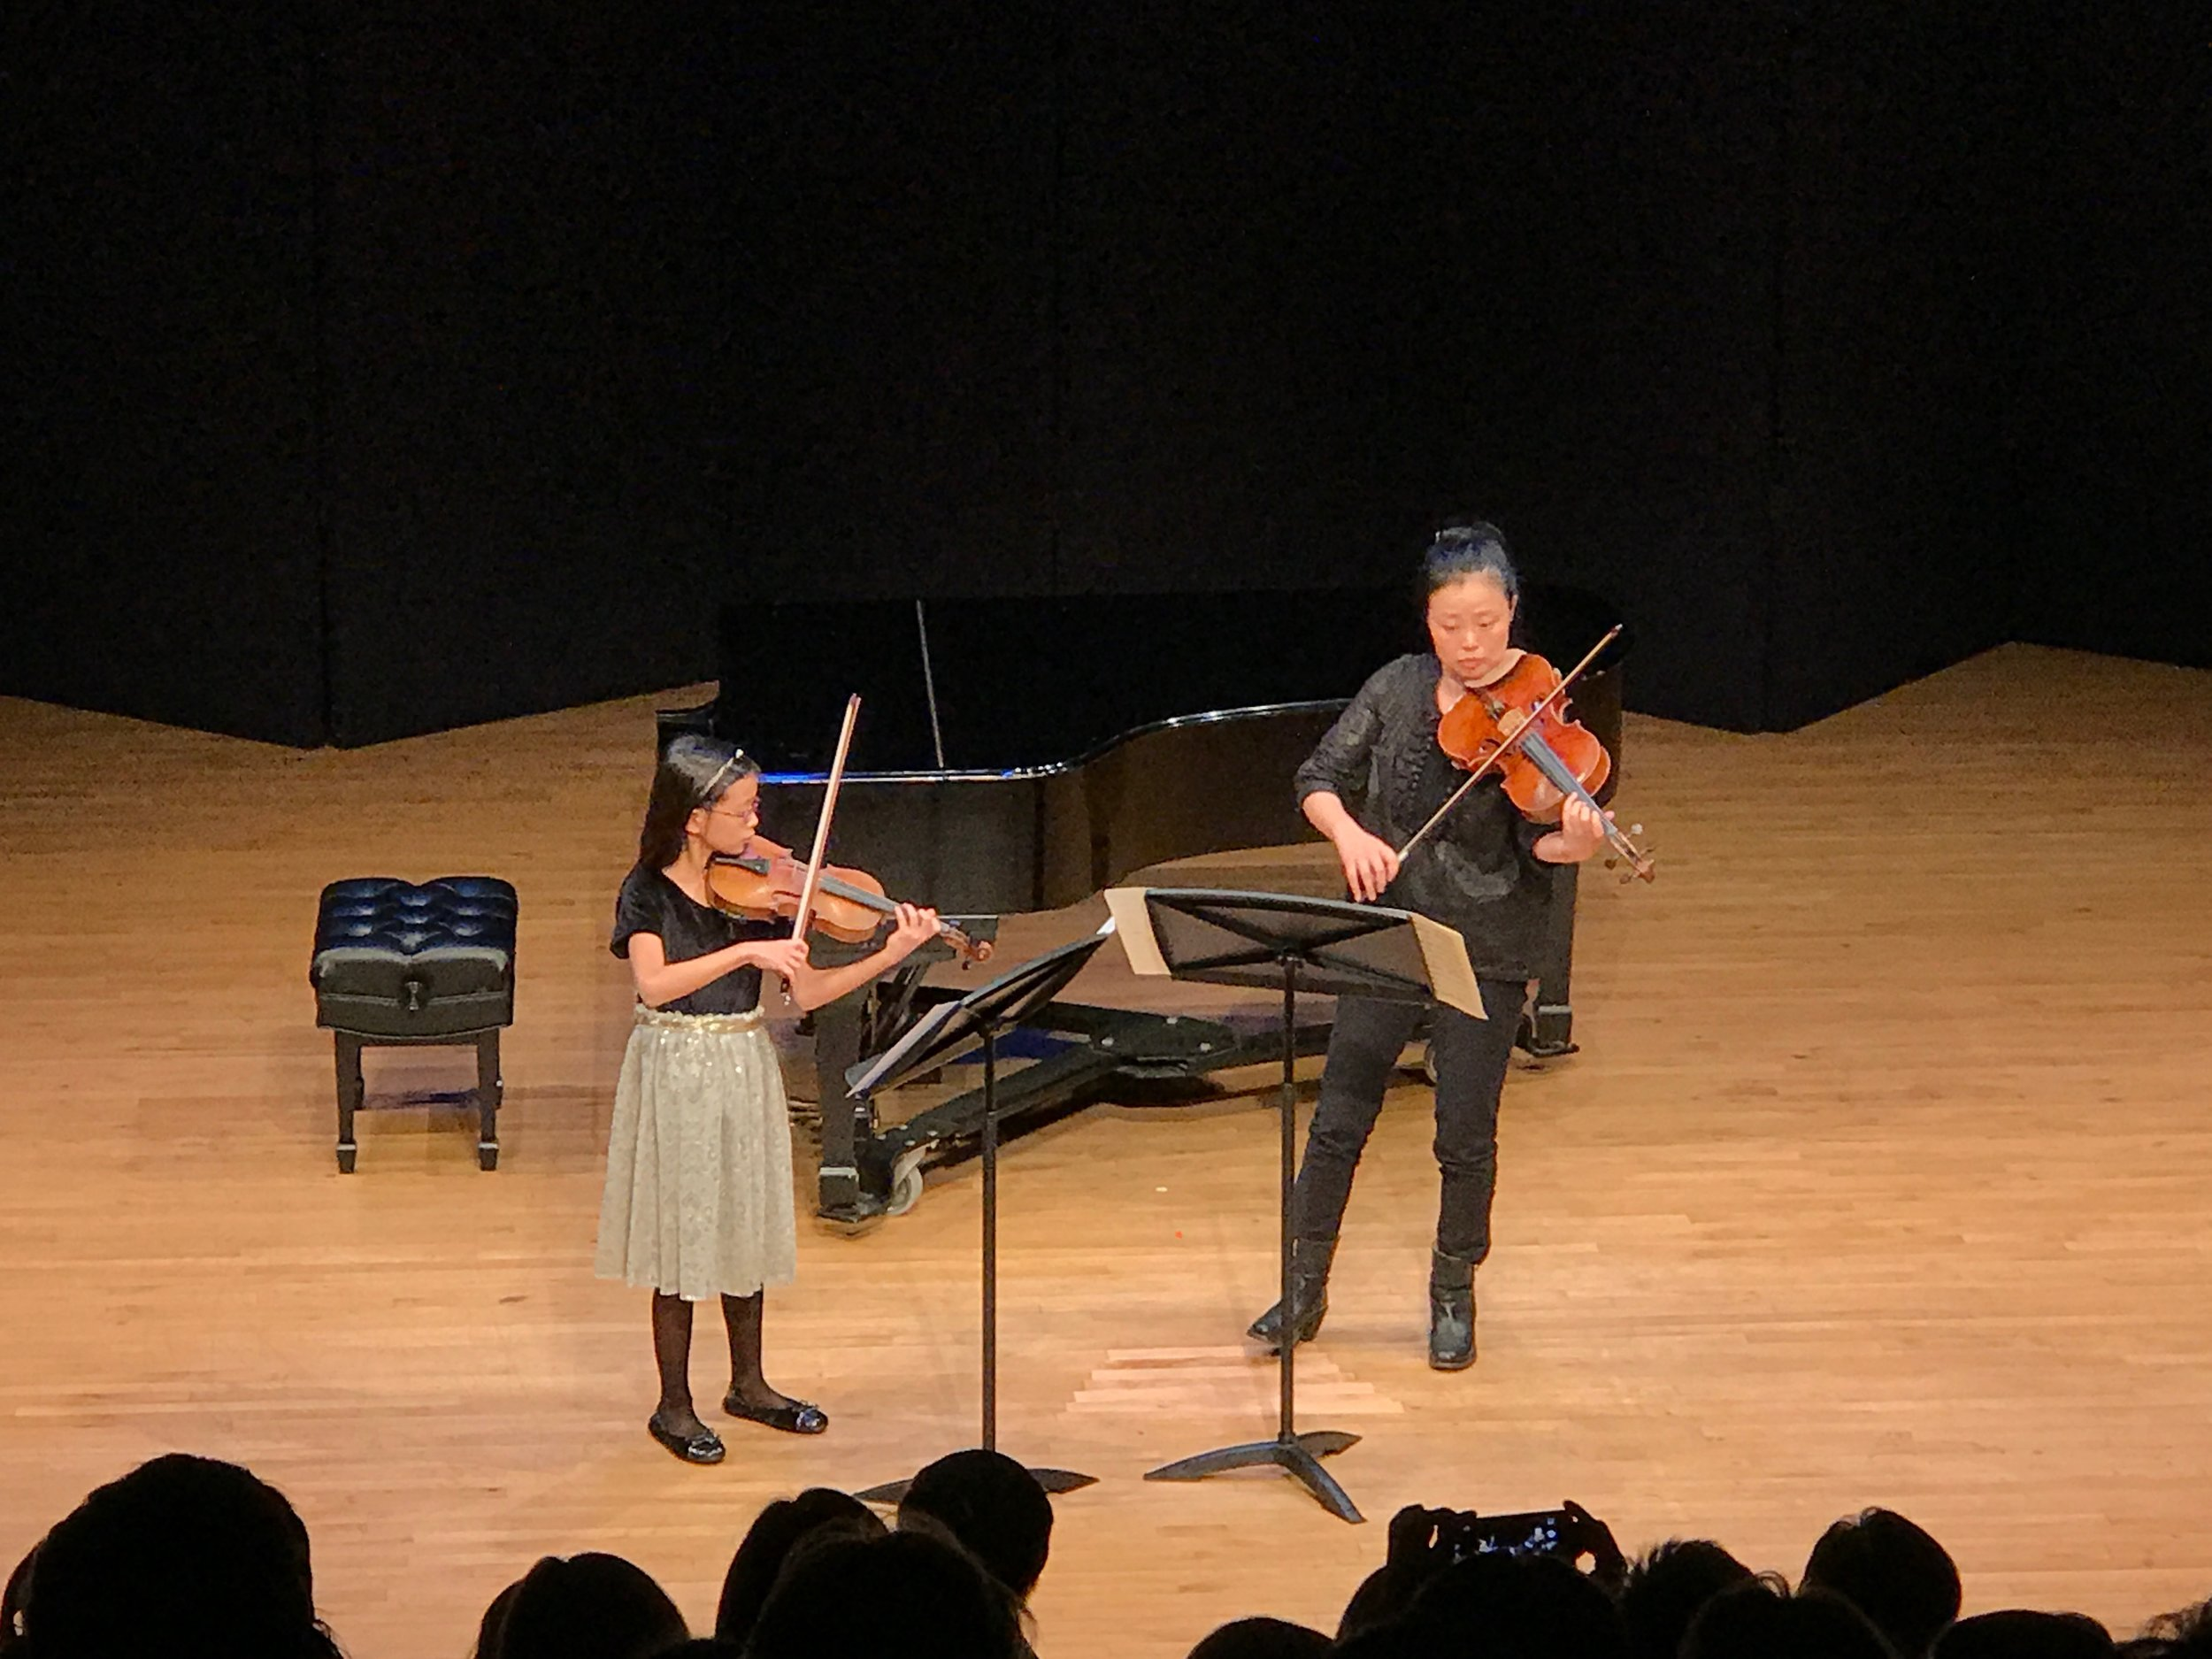 Participant Eugenia Lim and Vega violist Yinzi Kong perform Mozart's Duo in G, K. 423.